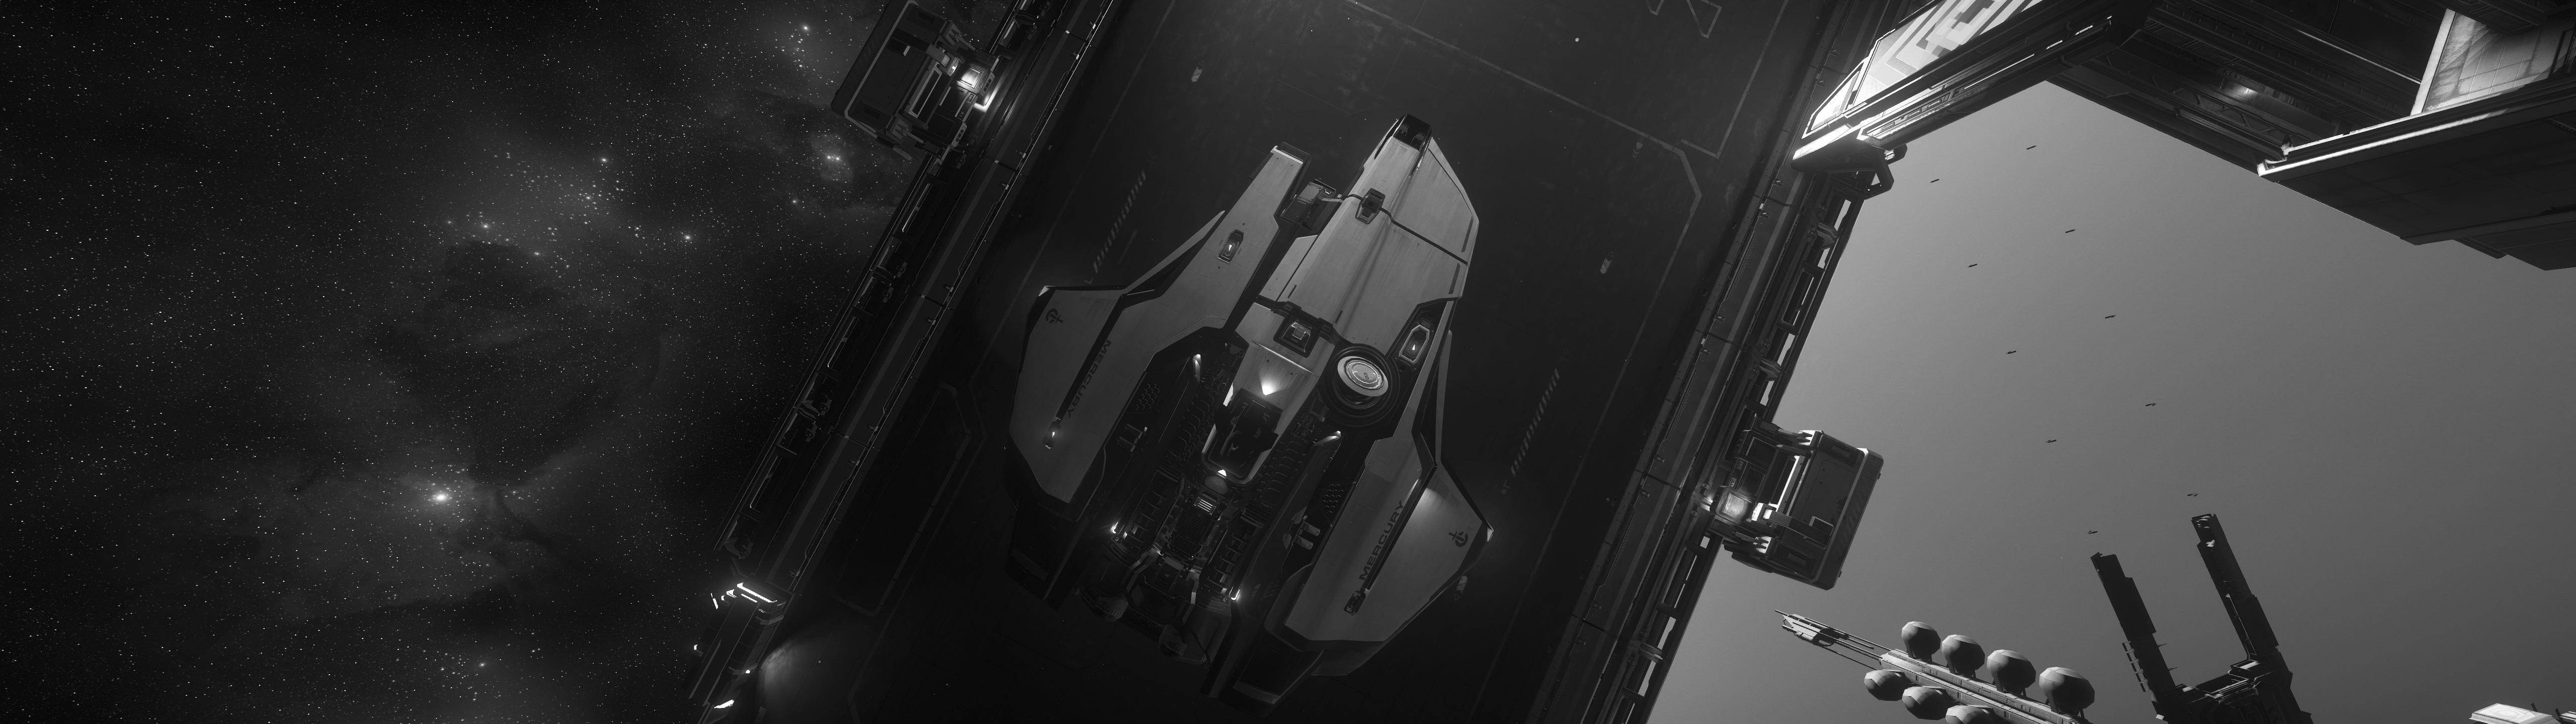 32 9 super ultrawide wallpaper free wallpapers for 3840x1080. Wallpaper For The Big Boys 5120 X 1440 Odyssey G9 Starcitizen